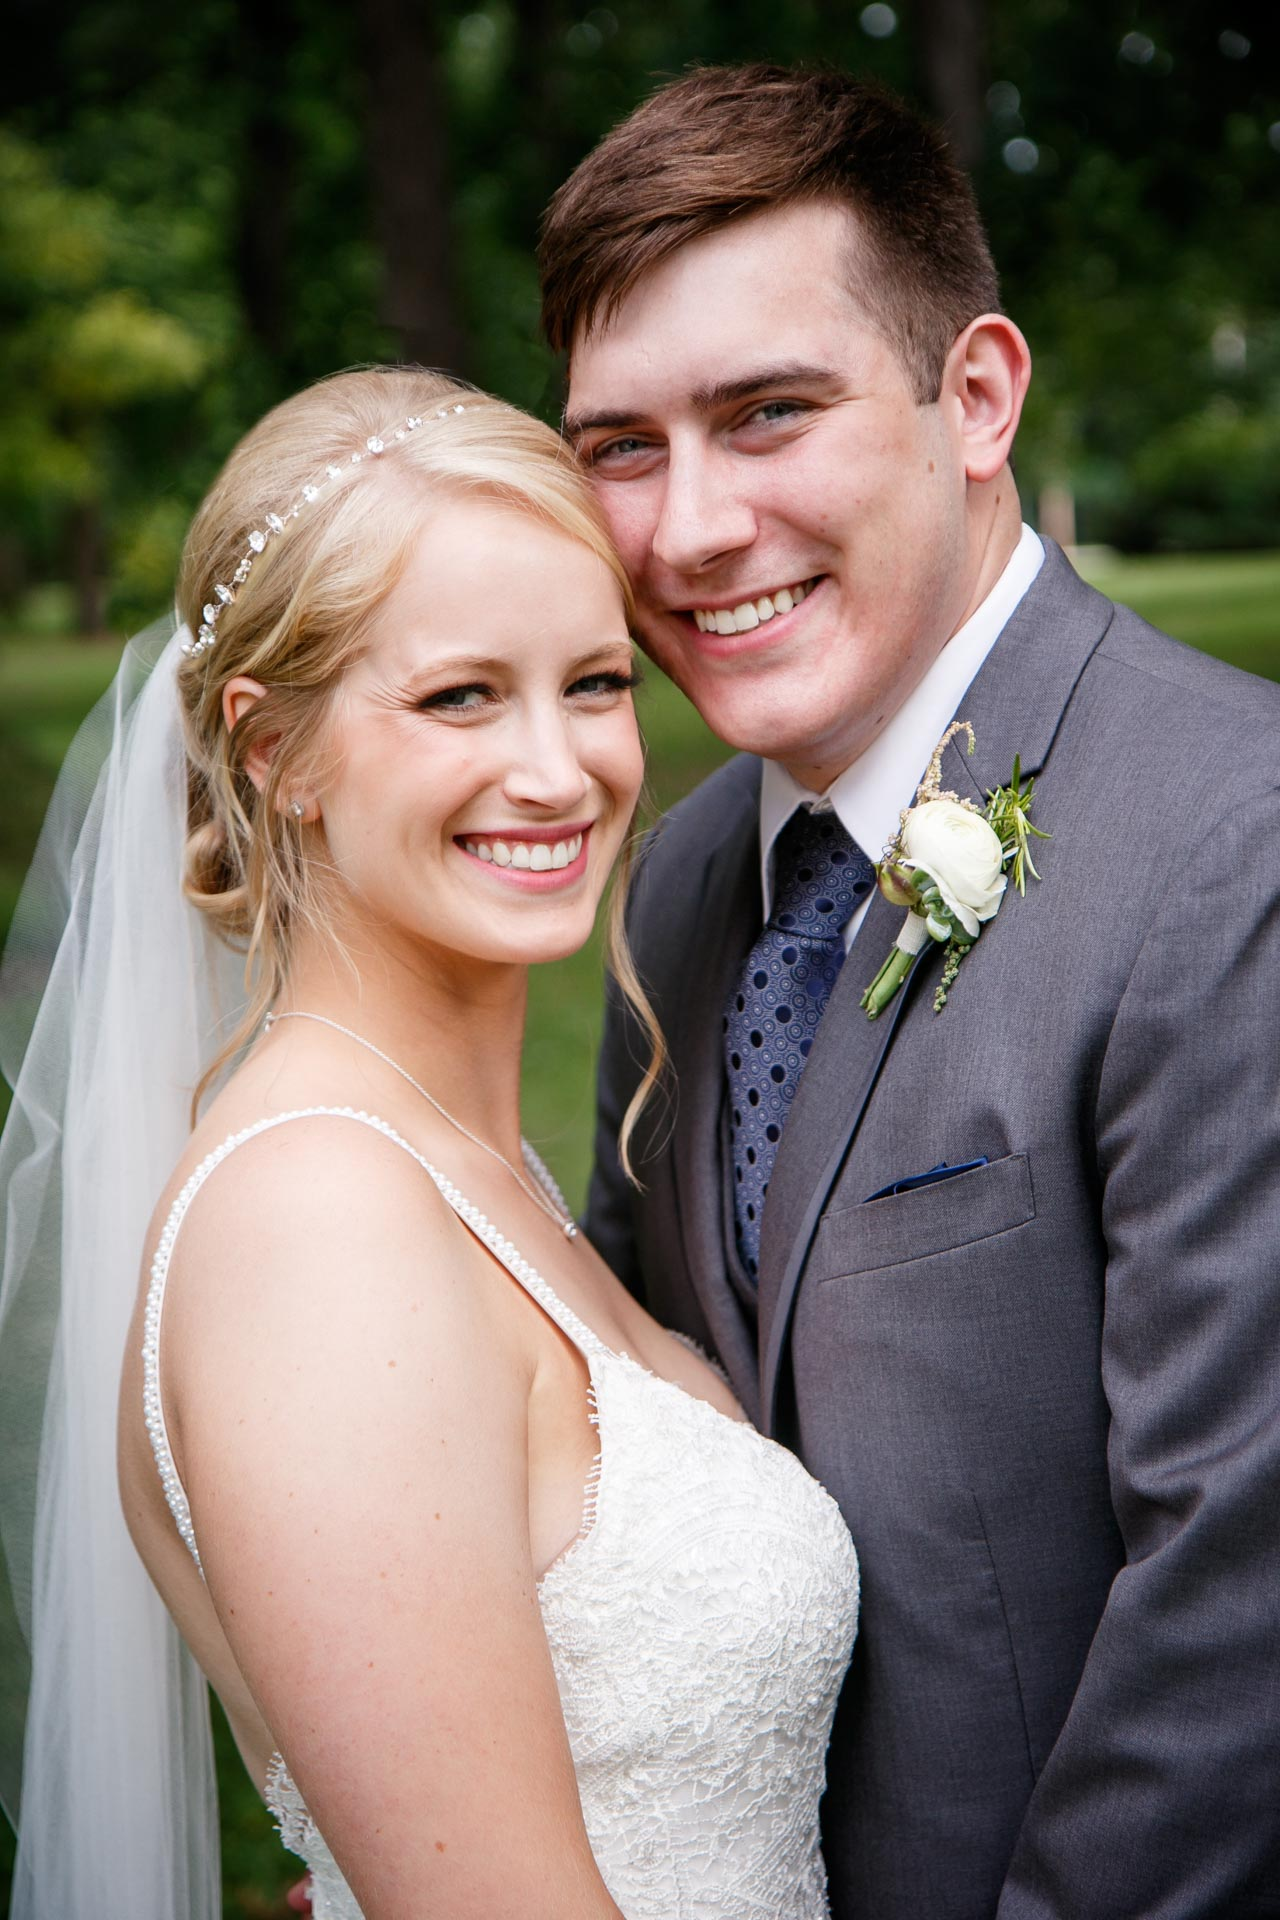 neenah-riverside-park-bride-groom-adam-shea-photography-green-bay-appleton-neenah-photographer-9.jpg